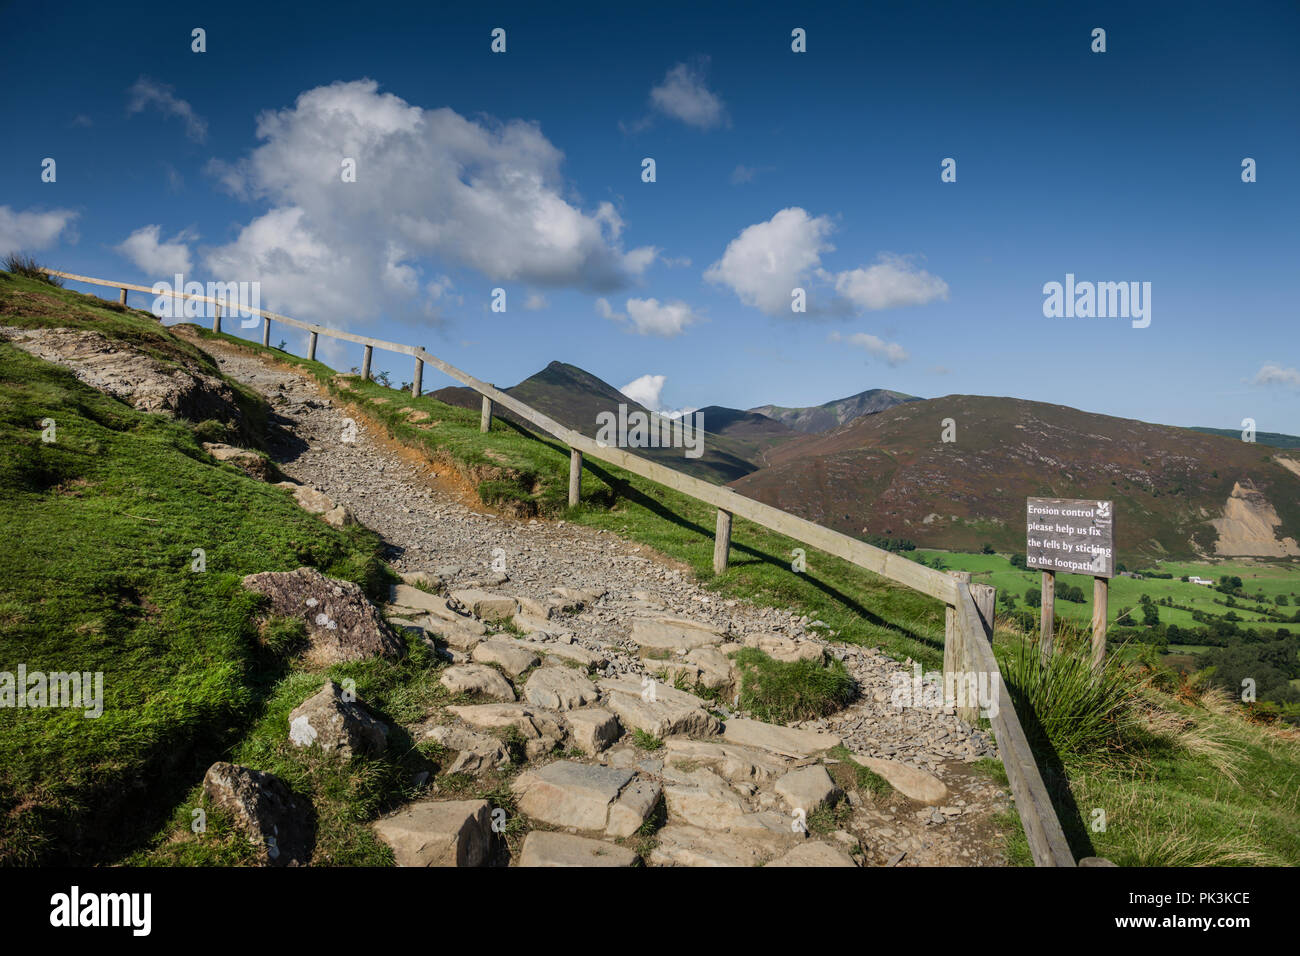 Pathway control to prevent erosion by heavy use of walkers, Catbells Fell, English Lake District. - Stock Image